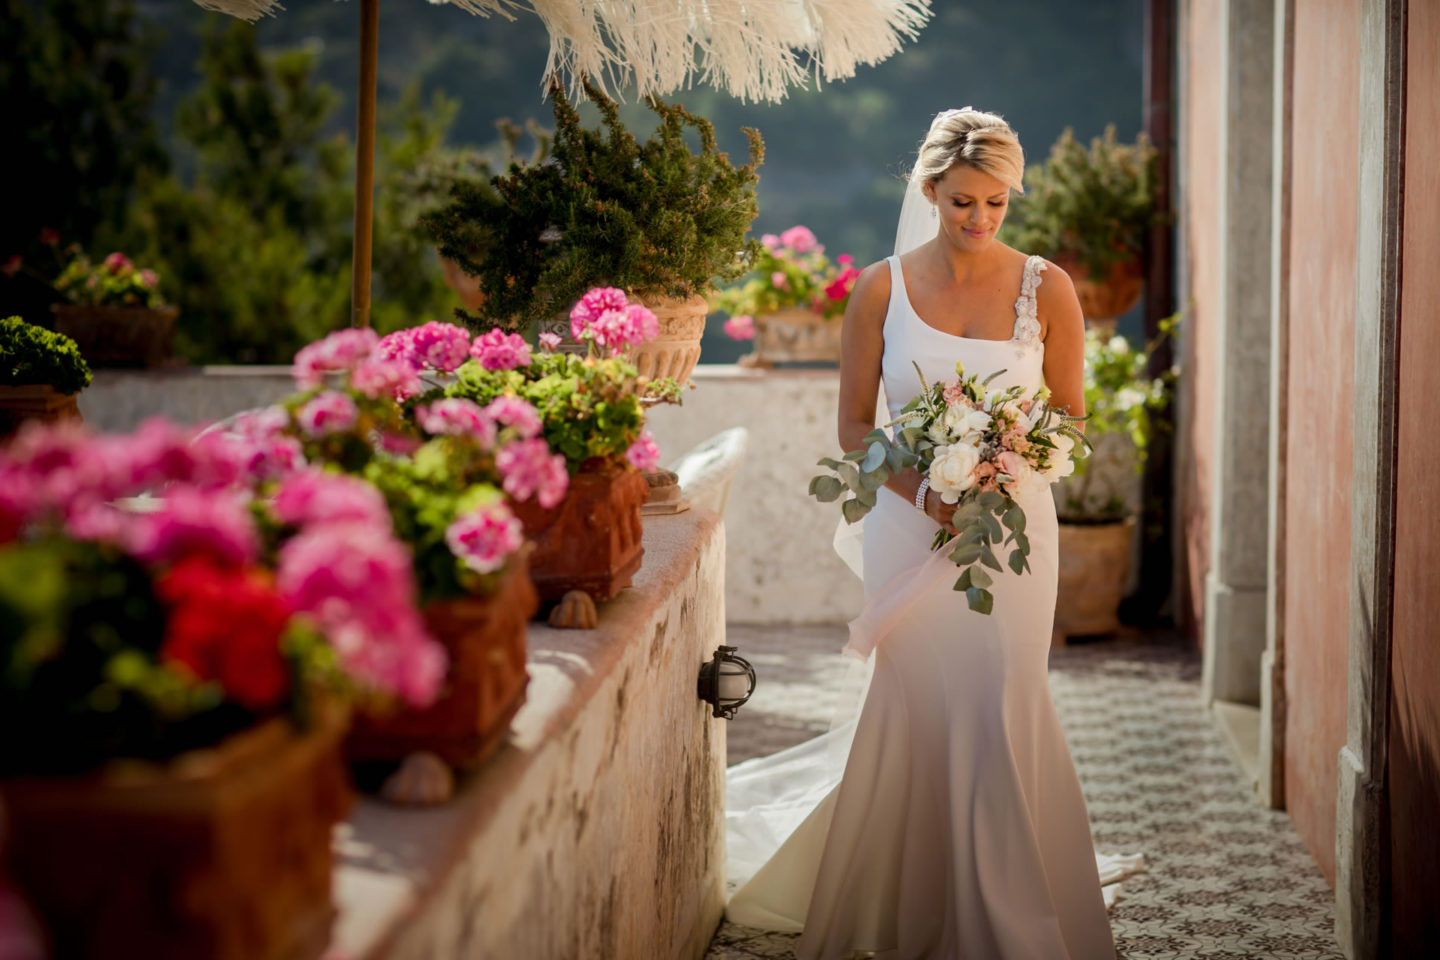 Arrival :: Wedding in Positano. Sea and love :: Wedding photographer based in Florence Tuscany Italy :: photo-21 :: Arrival